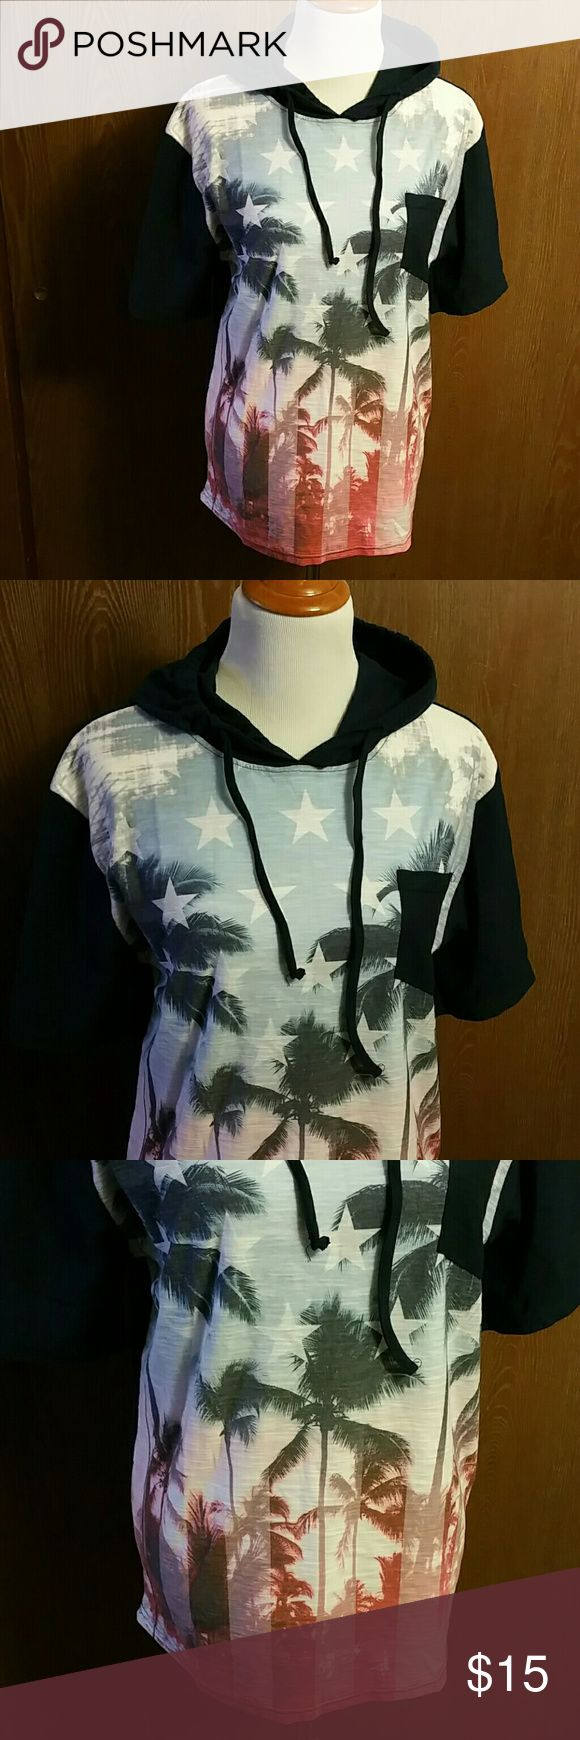 Distortion Men's Hoodie Size Large NWT NWT Size Large.  Short sleeve hooded pullover from Distortion.   Palm trees and flag design with navy blue back. 1 navy blue breast pockets.   Men's shirt Distortion Shirts Sweatshirts & Hoodies